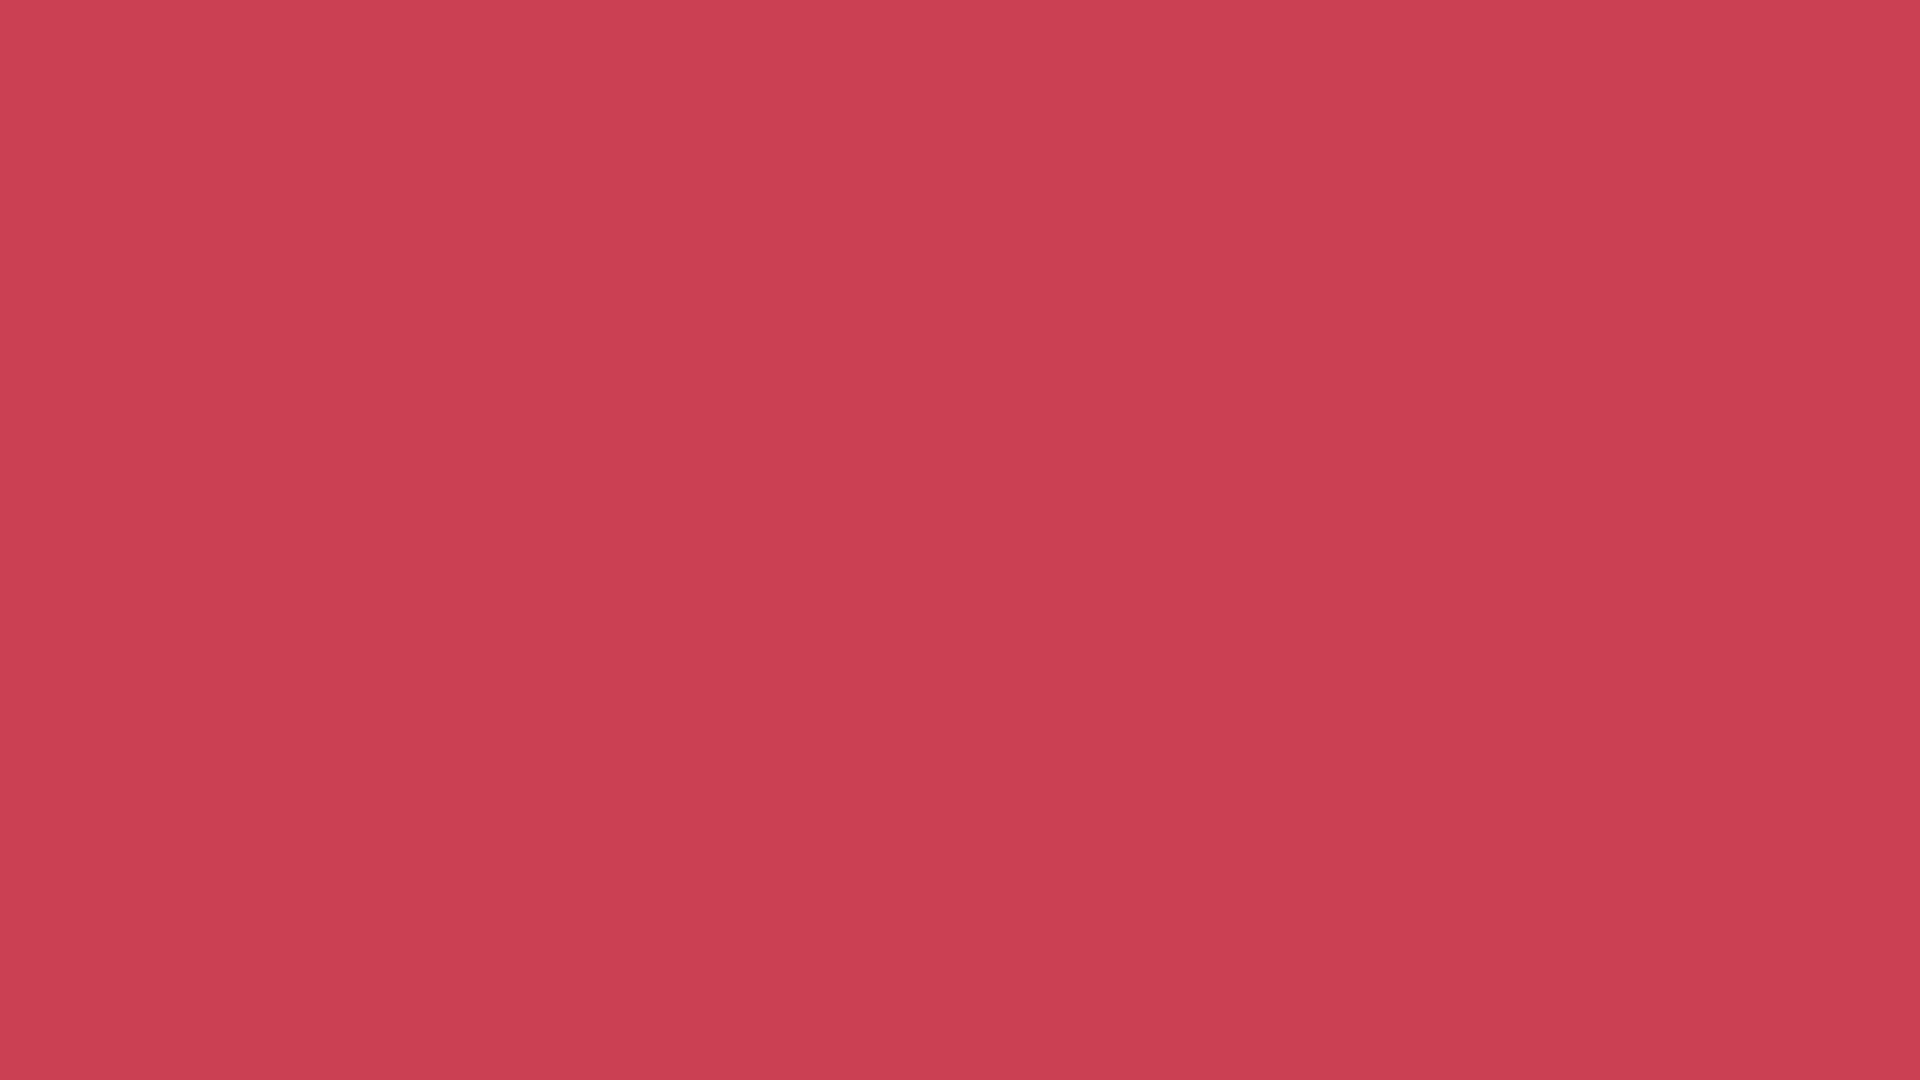 1920x1080 Brick Red Solid Color Background